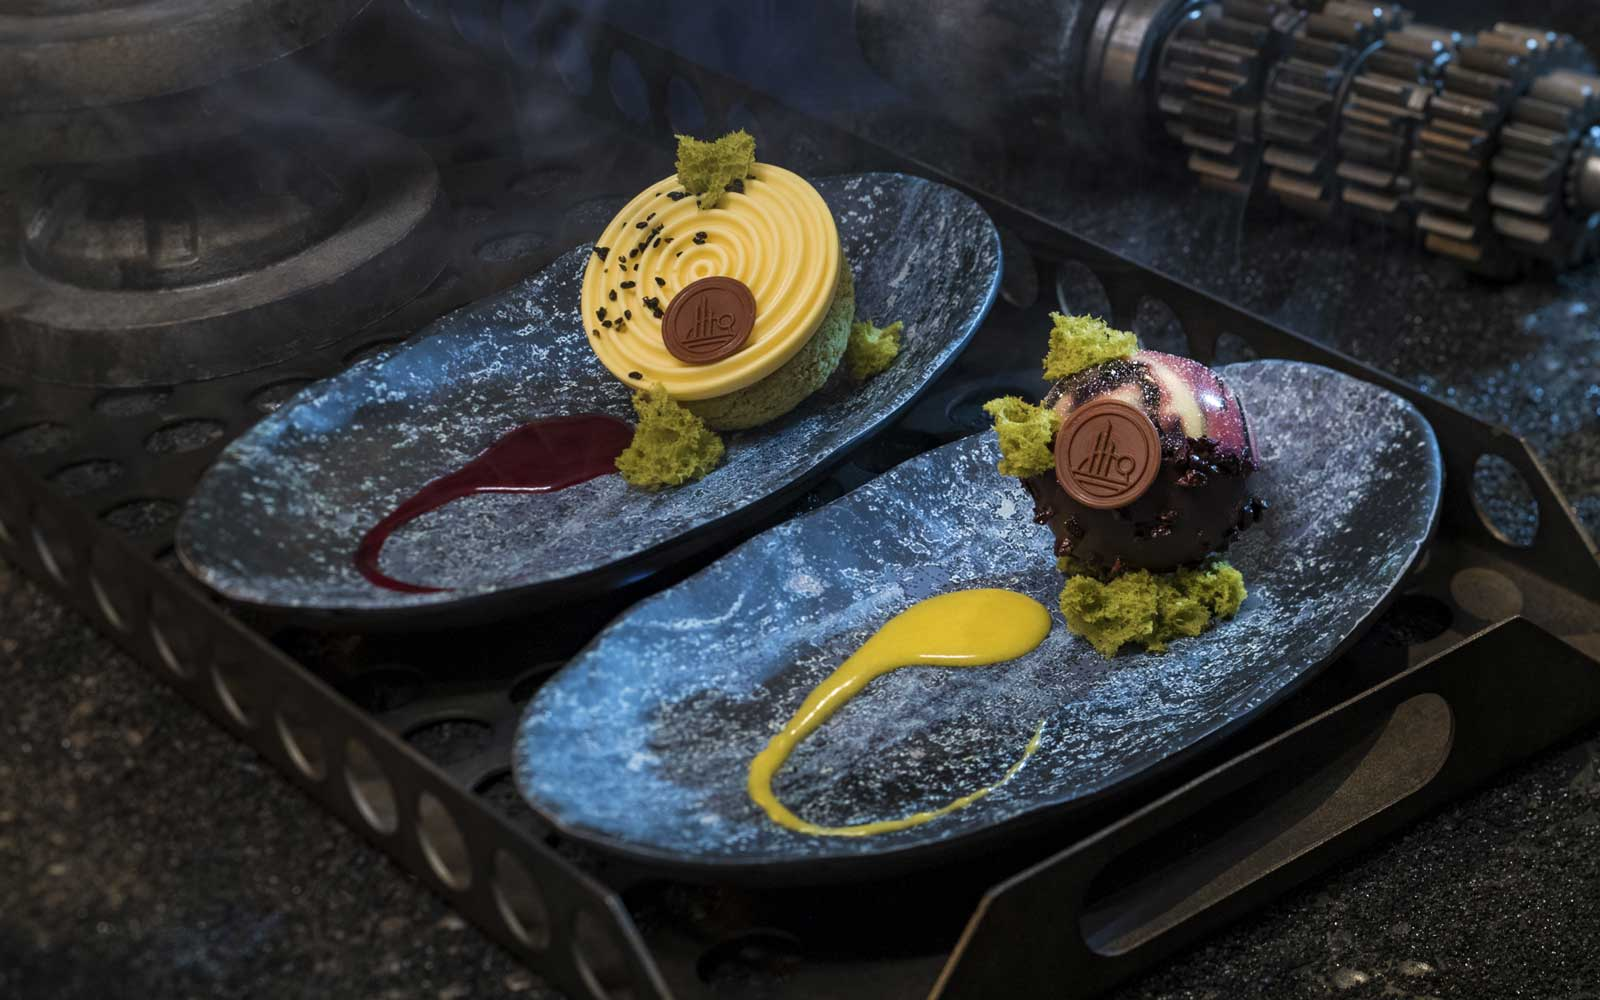 Guests can indulge in a raspberry crème puff with passion fruit mousse (left) or chocolate cake with white chocolate mouse and coffee custard (right) at Docking Bay 7 Food and Cargo inside Star Wars: Galaxy's Edge.